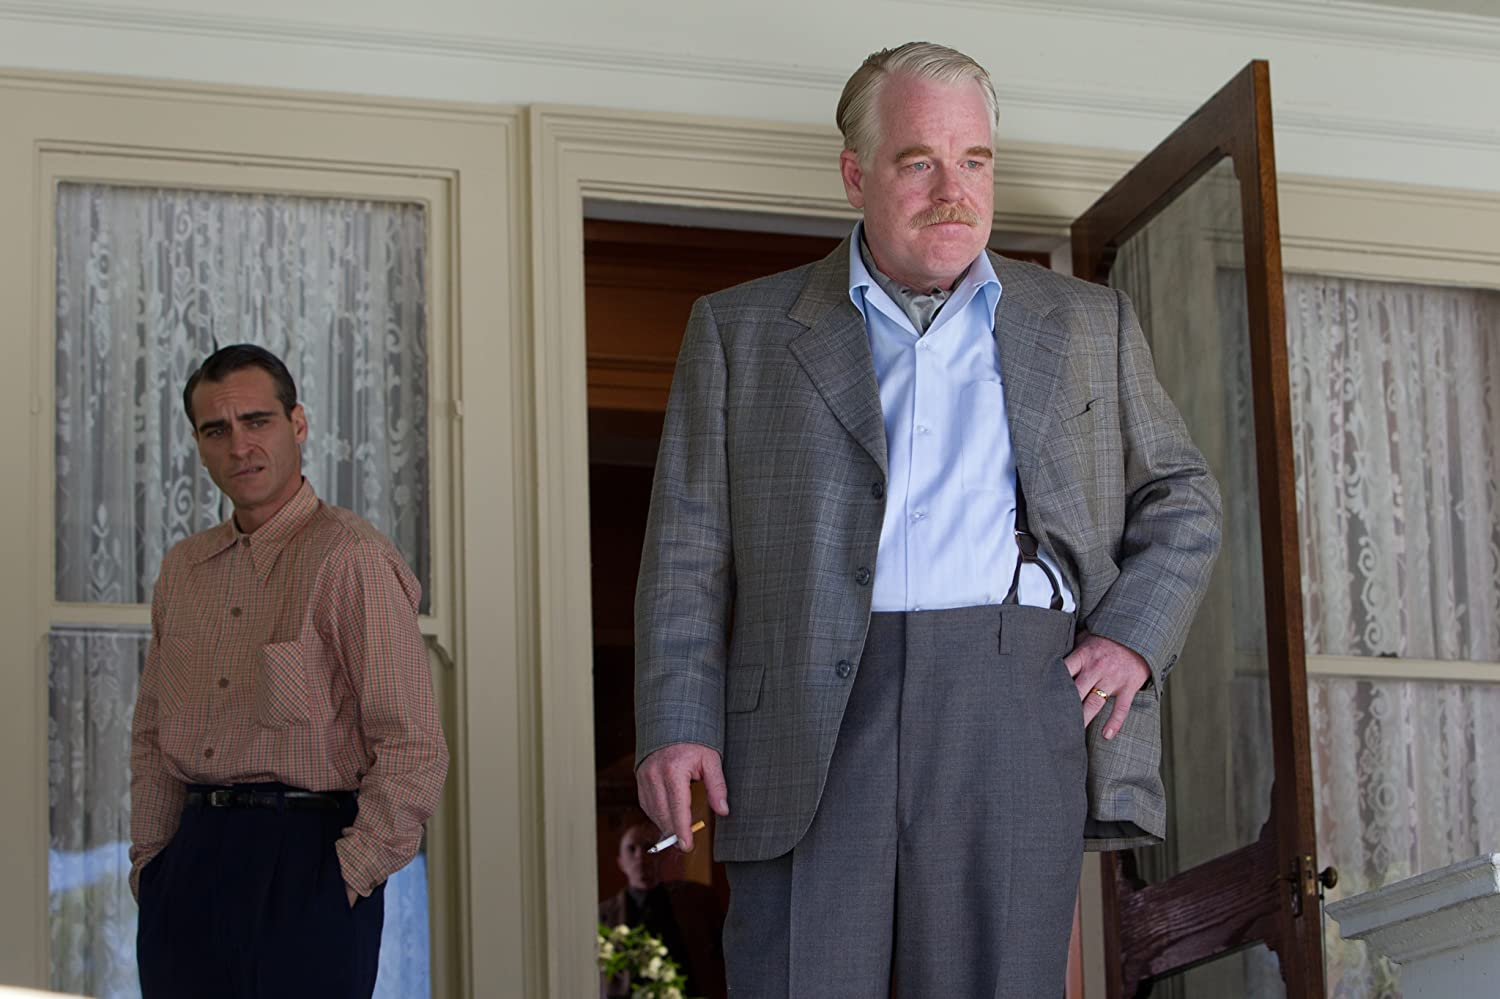 Philip Seymour Hoffman and Joaquin Phoenix in The Master (2012)